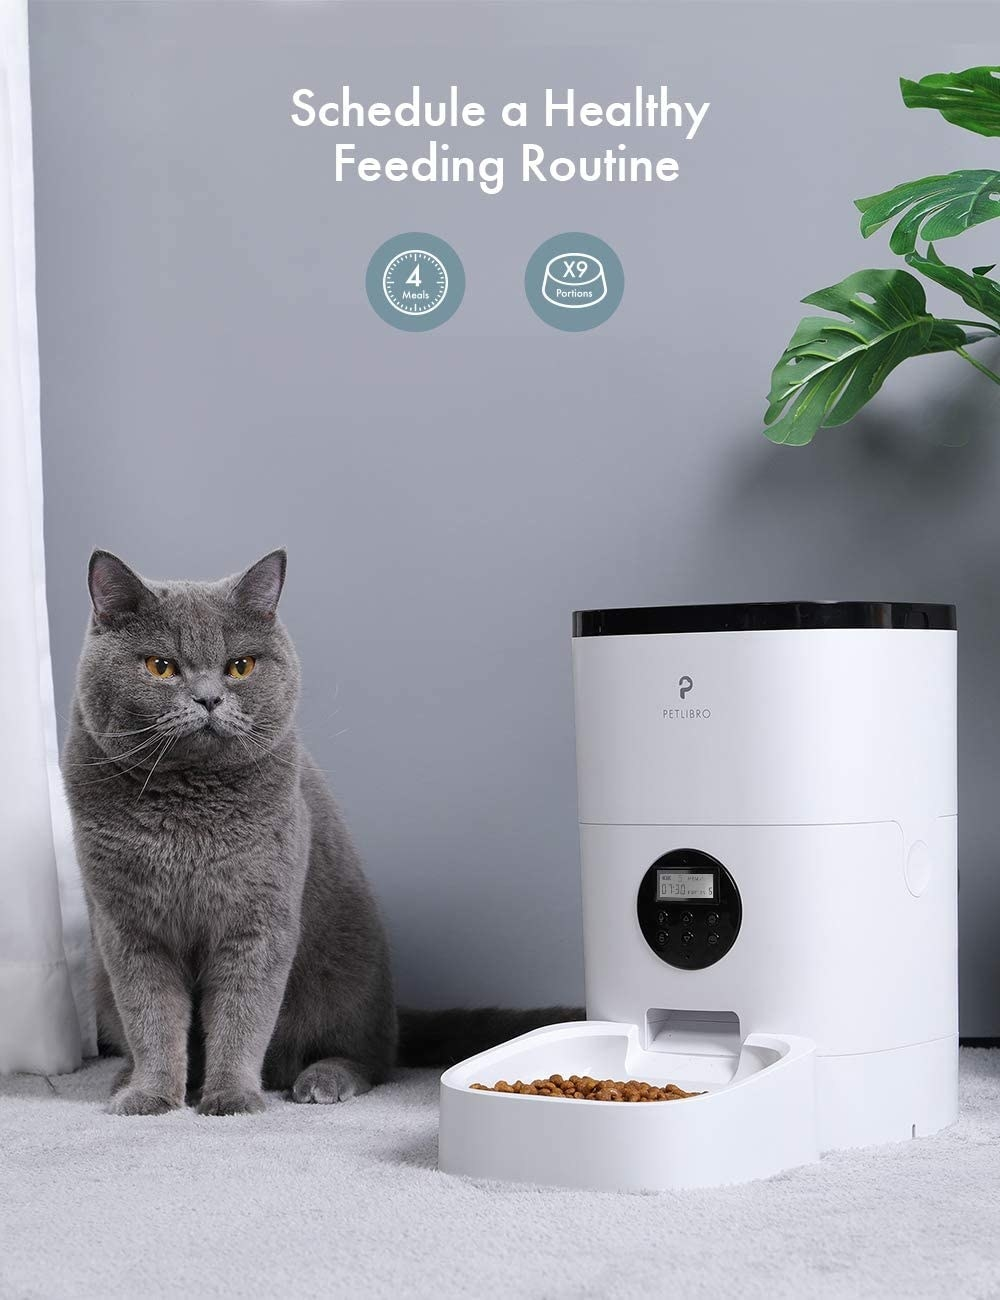 A cat sitting next to the feeder, which has a tray full of fresh food